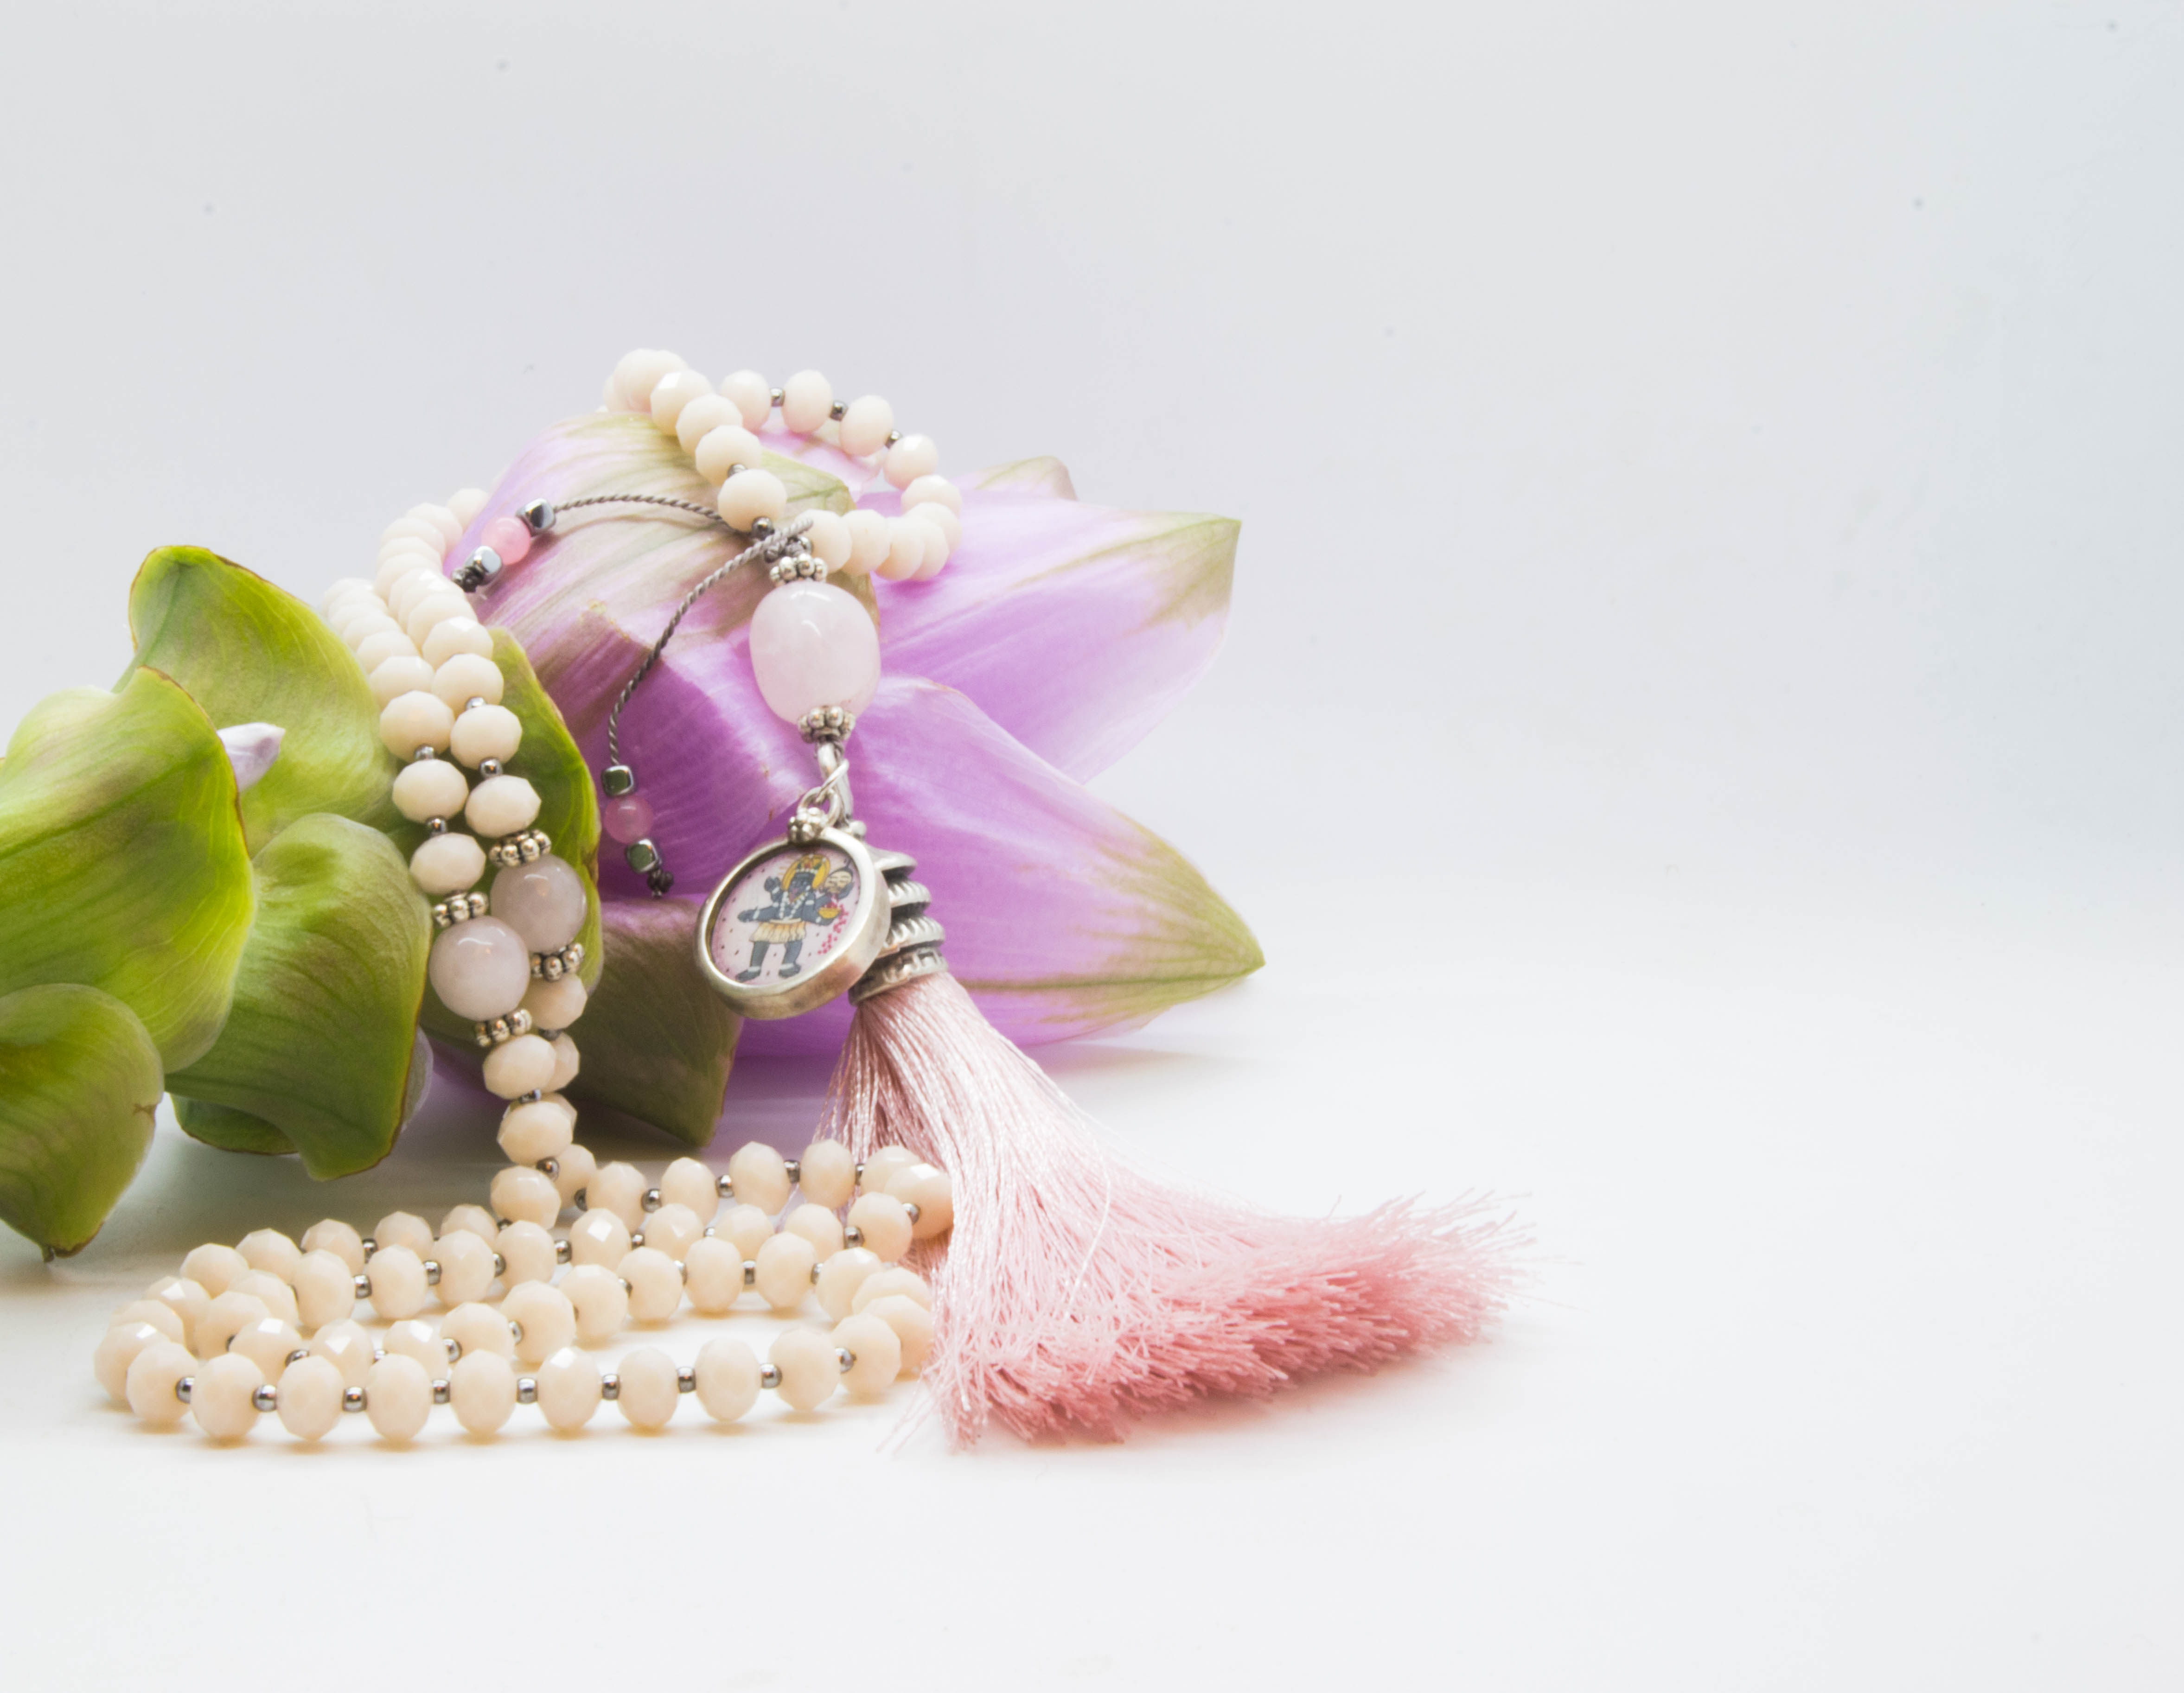 Hindu Deity Kali Mala With Seashell Coloured Faceted Glass Beads, Rose Quartz, Hematite & Pink Boho Tassle